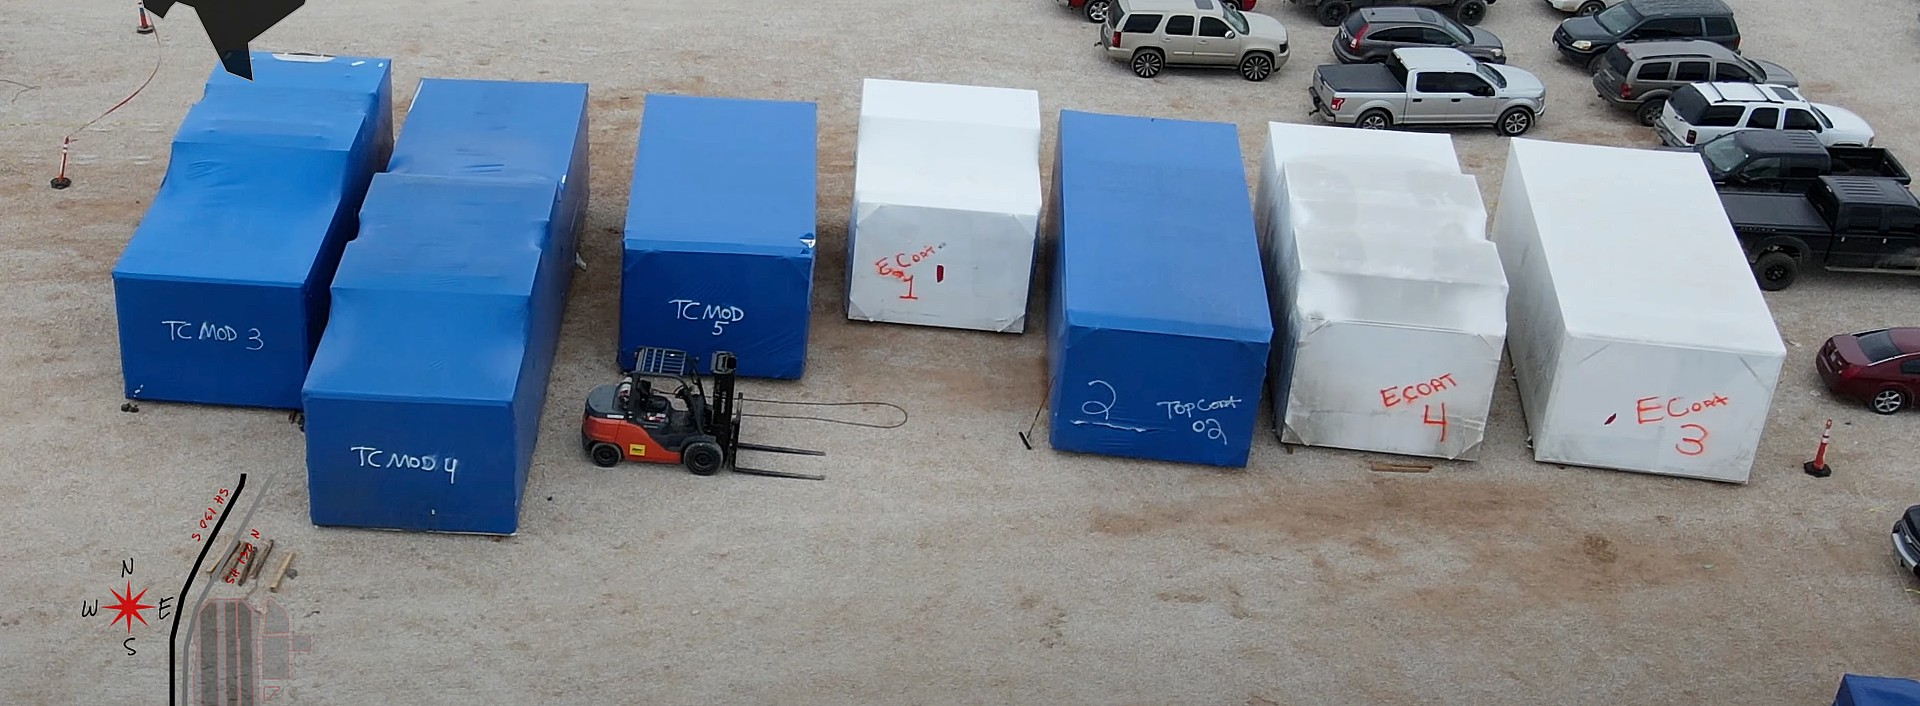 tesla-giga-texas-paint-shop-containers